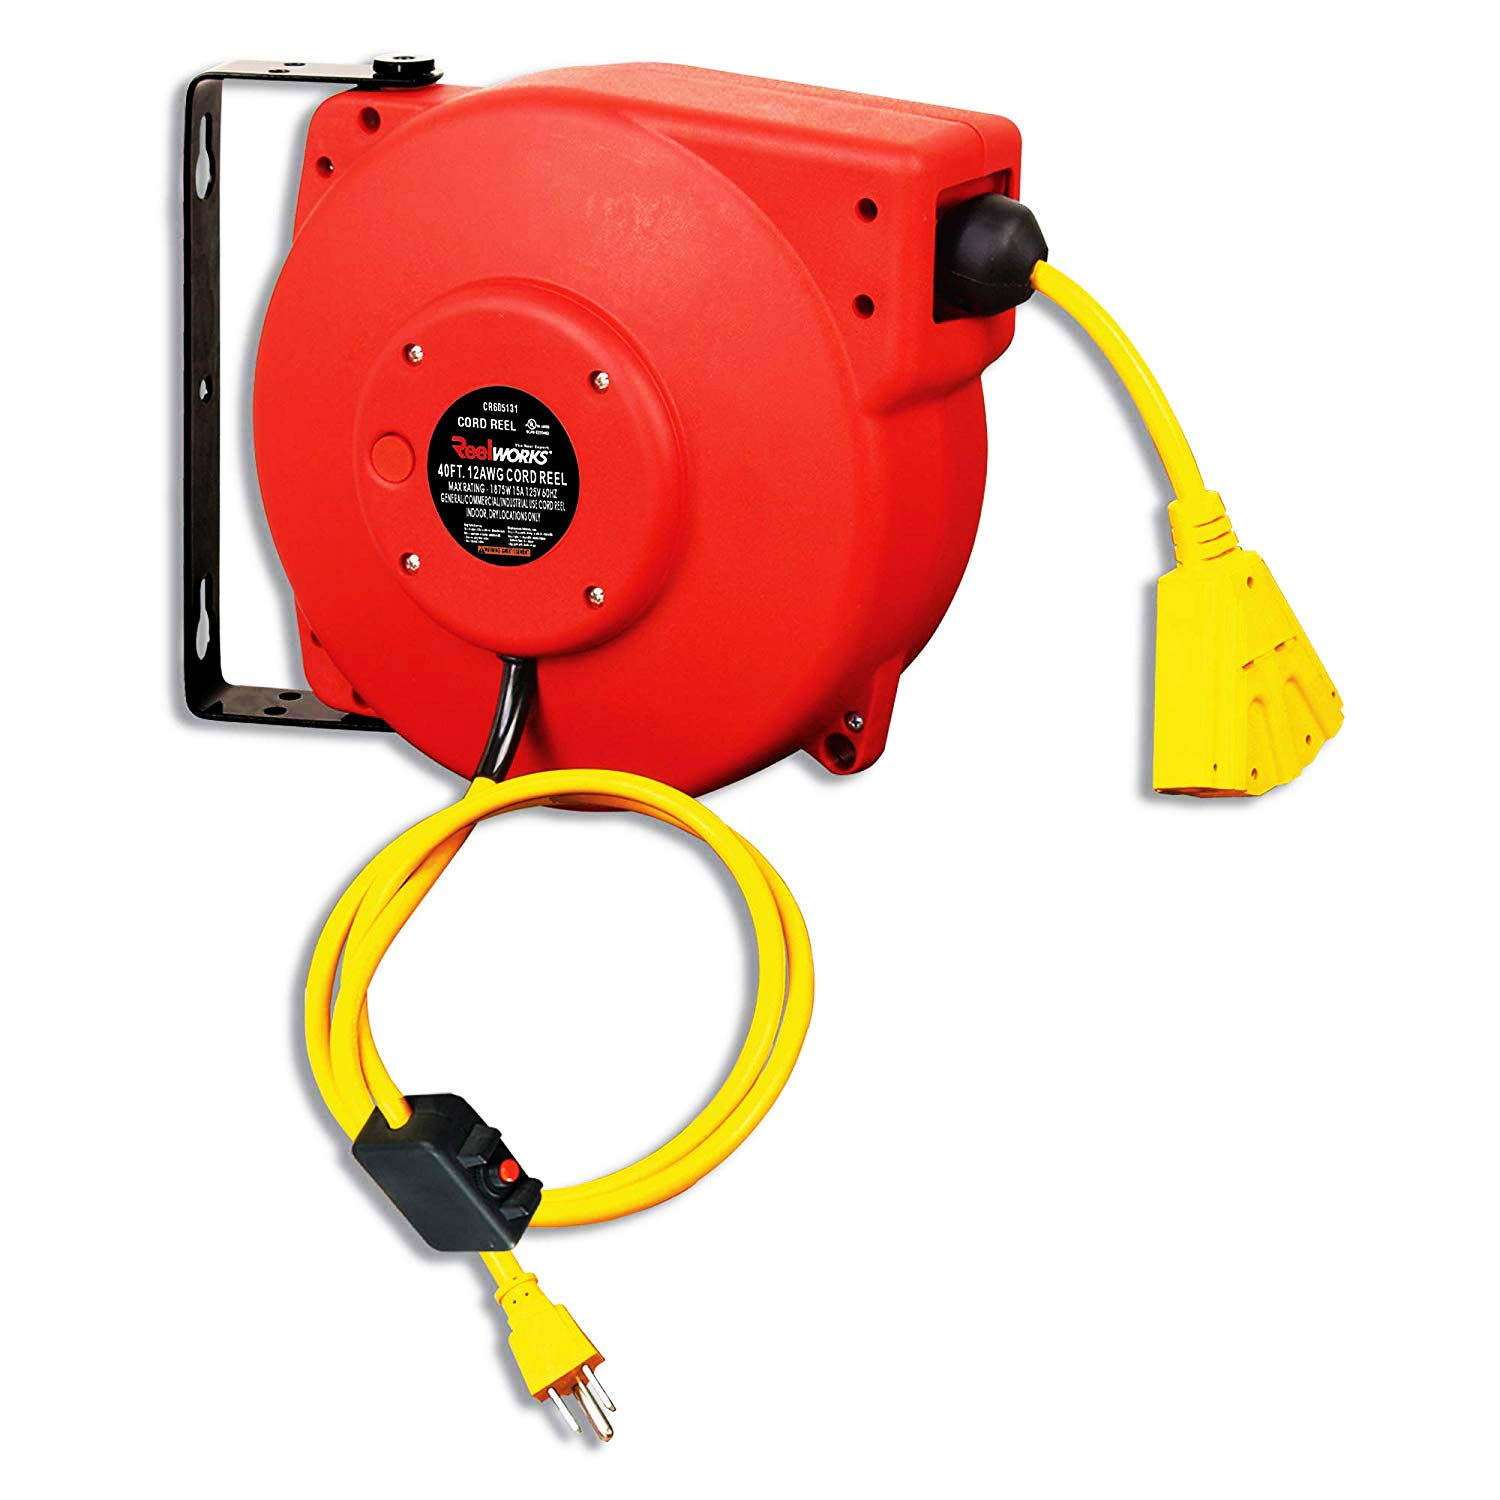 REELWORKS Retractable Extension Cord Reel Polypropylene Industrial 12AWG x 40' Feet Commercial Grade 3C SJT Cable with Triple Tap Connector 15A 125VAC 1875W 60Hz Circuit Breaker Best for Indoor Use by ReelWorks